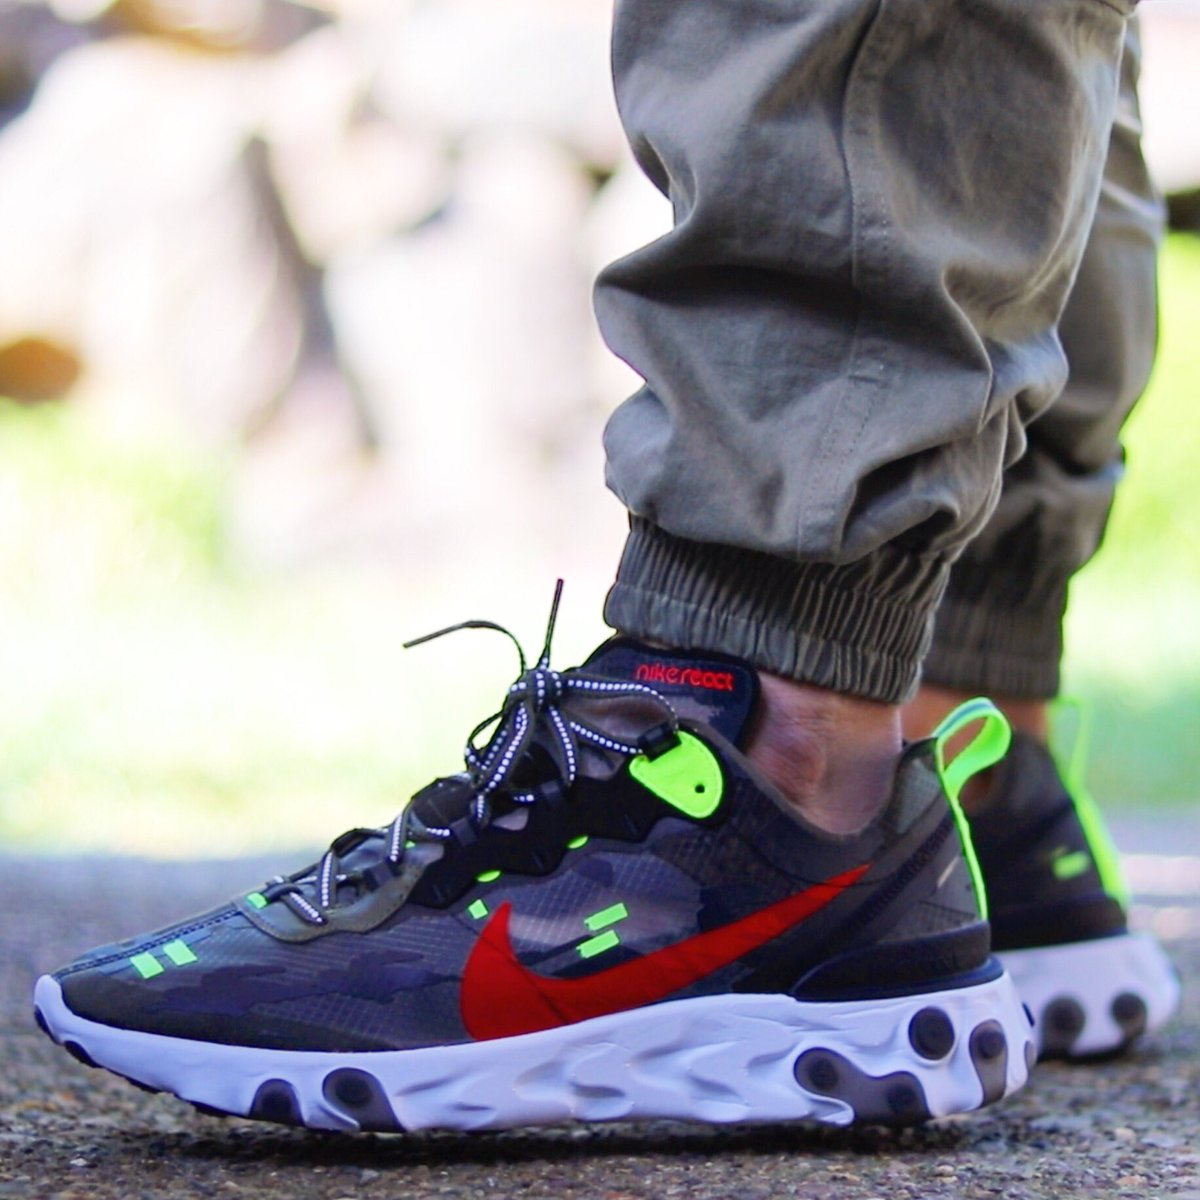 61f9e1e400250 Nike React Element 87 great shoe forfor  130! w code SPORT30 (ends tonight)  https   t.co OXv2YnPAkh ·  heskicks http   bit.ly 2Wv60D1